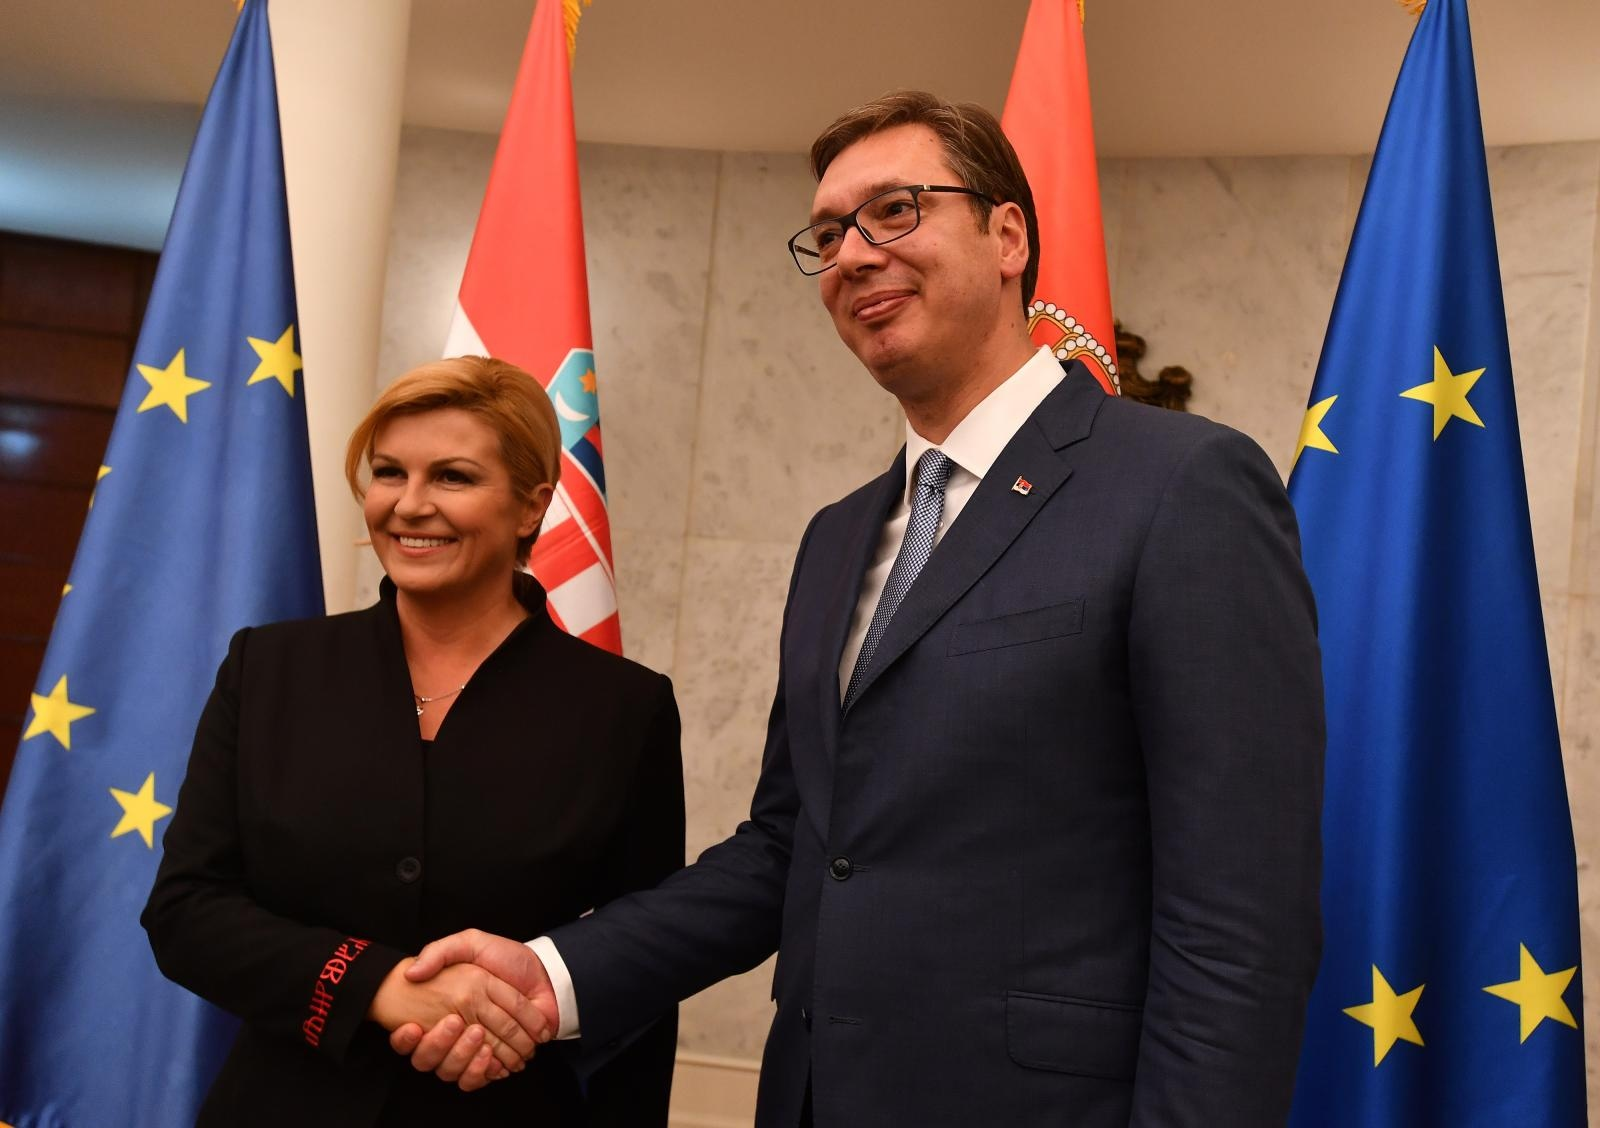 Vucic accepts invitation to visit Zagreb